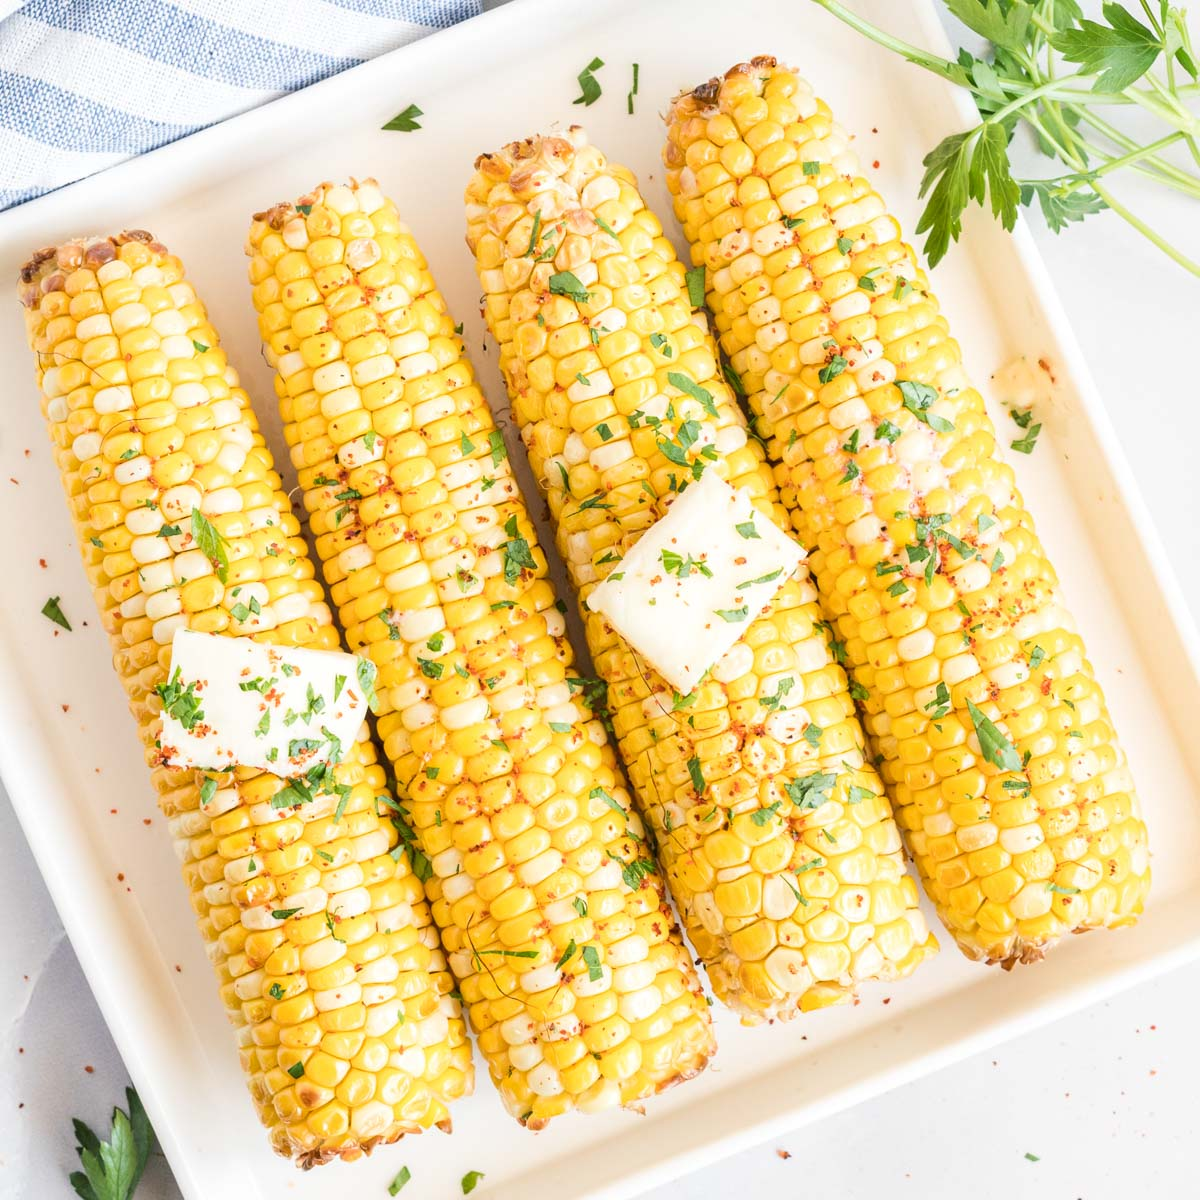 Corn on the cob on a plate topped with pats of butter, salt and chopped herbs.